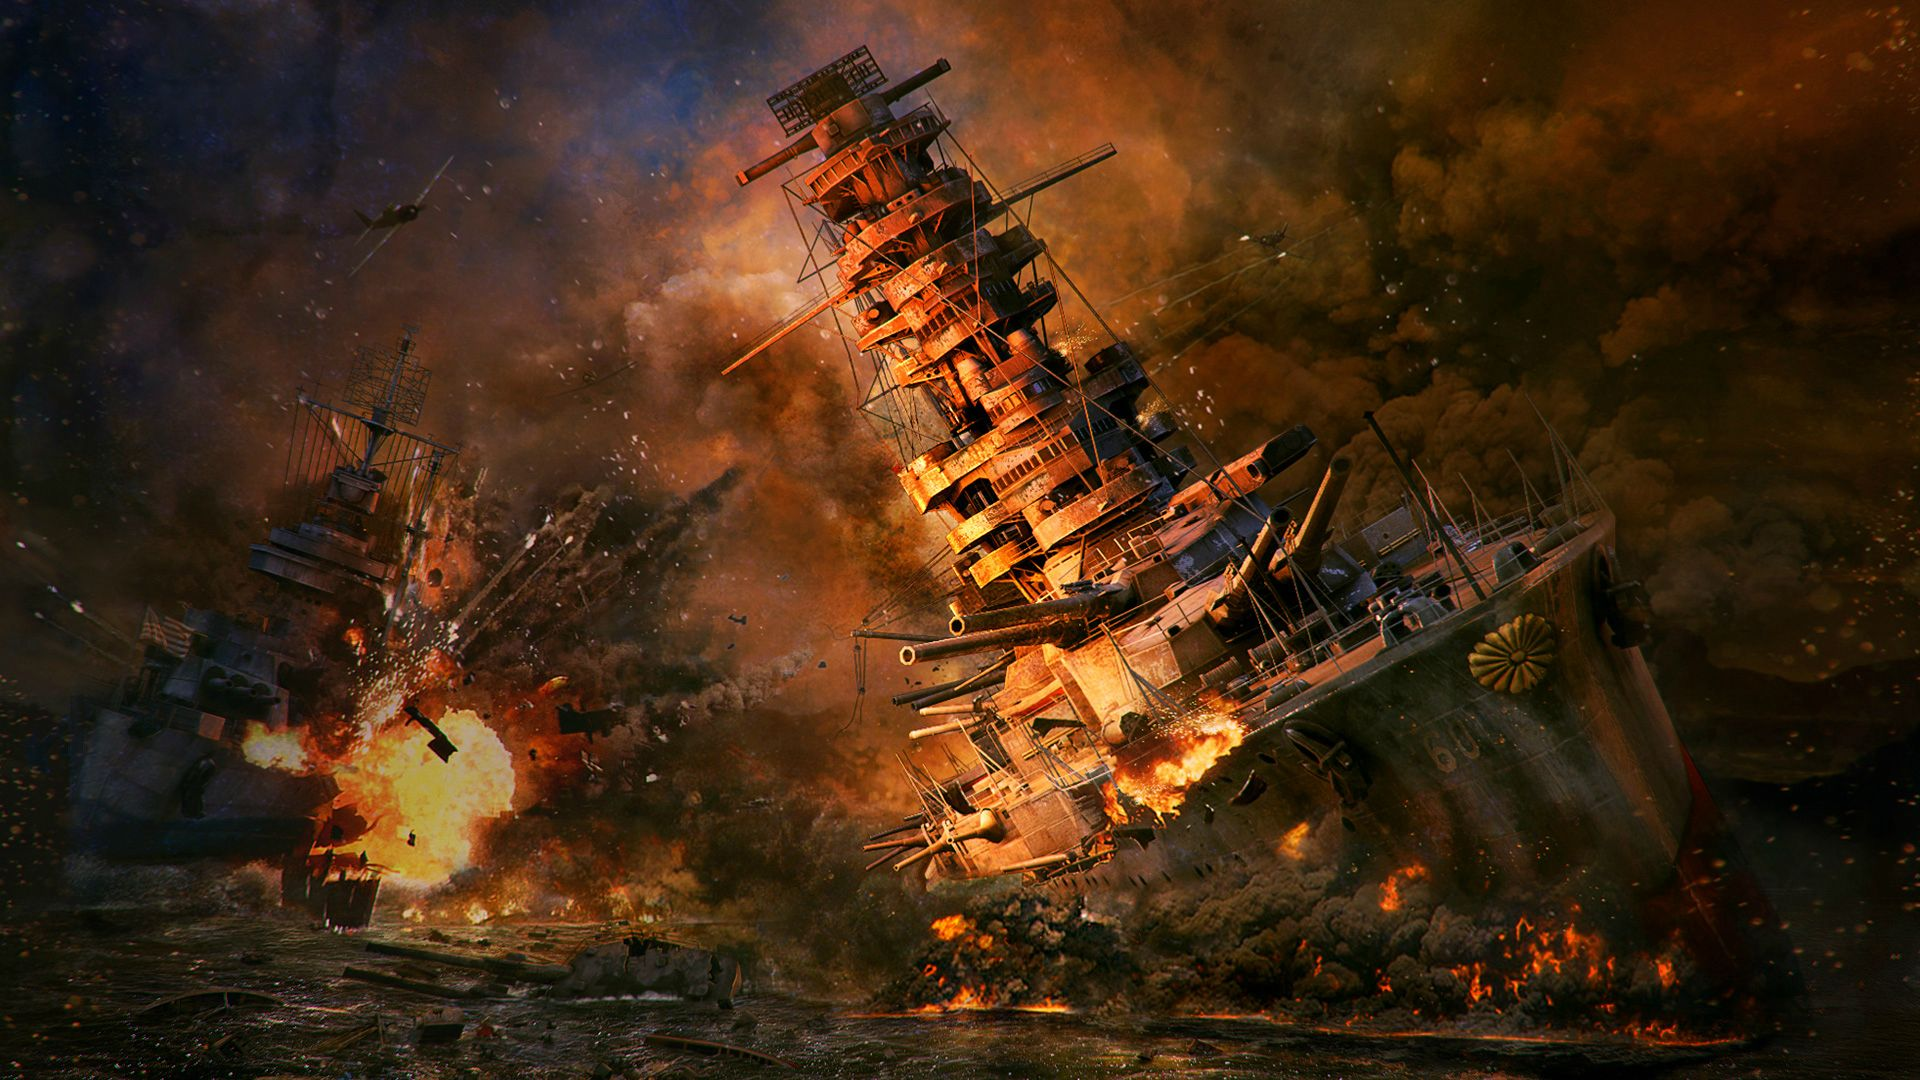 1920x1080 Hd Wallpaper Background Image: World Of Warships Full HD Wallpaper And Background Image